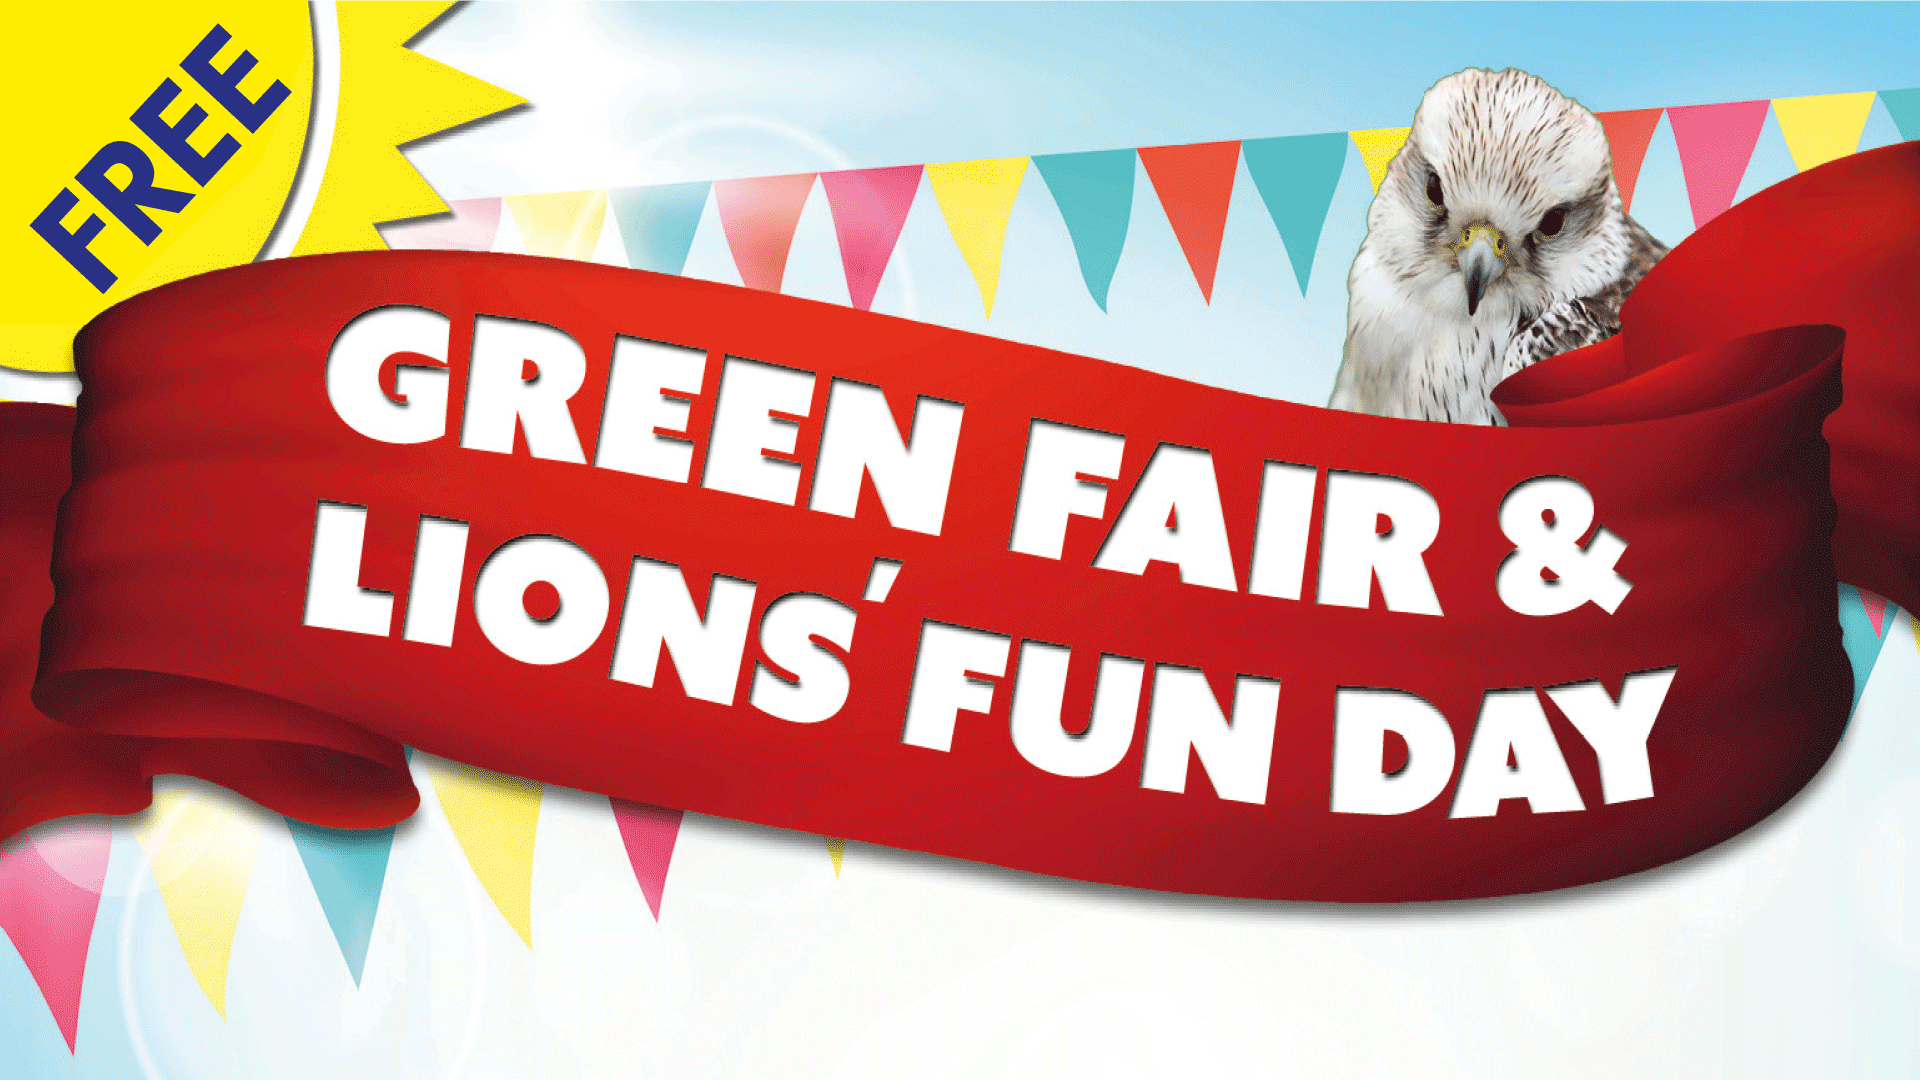 The grass is greener at the Green Fair